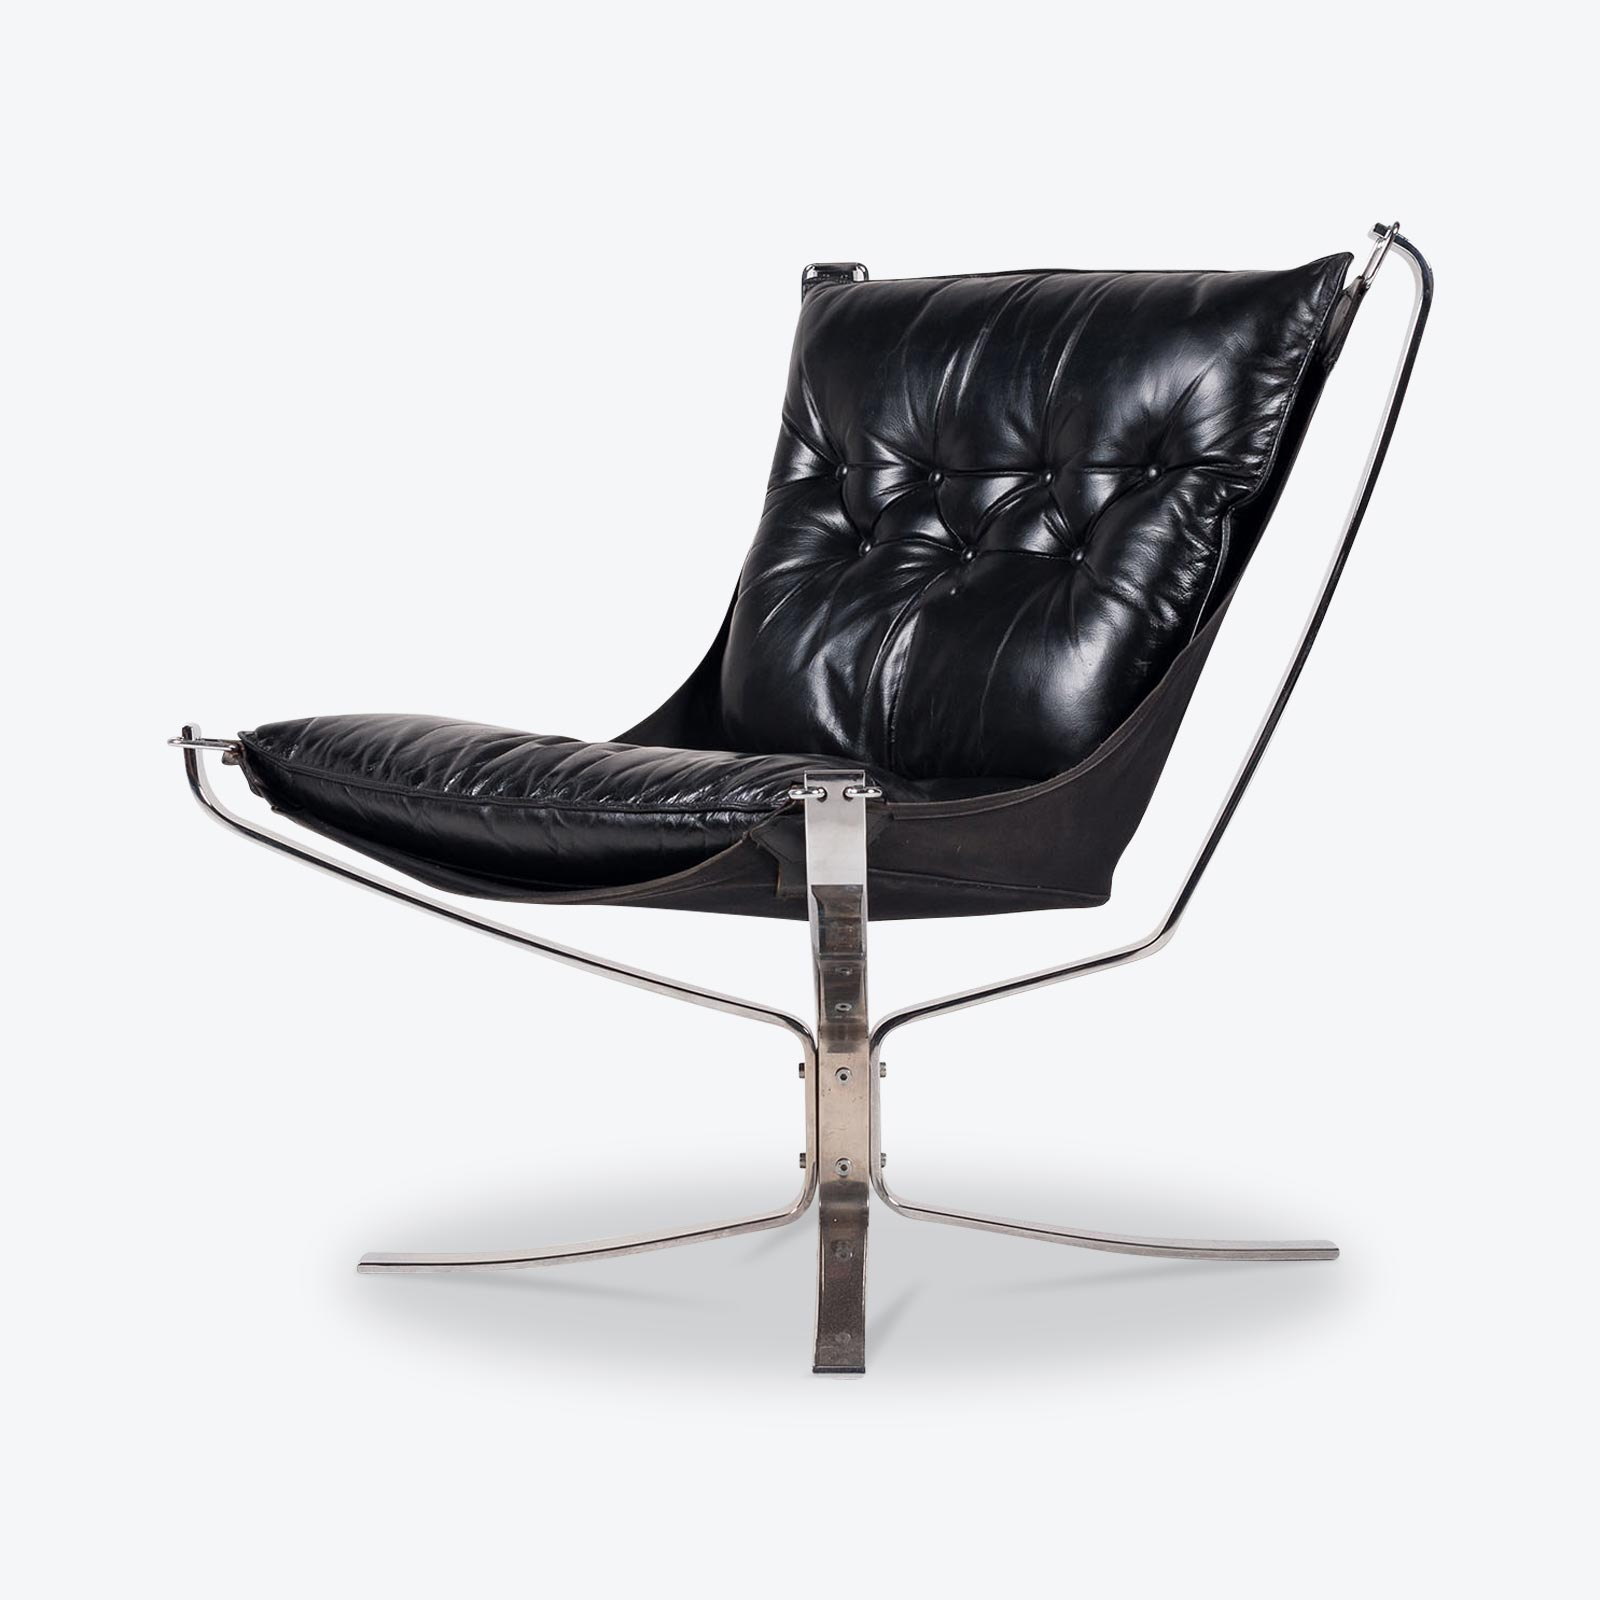 Low Back Falcon Armchair By Sigurd Resell For Vatne Mobler In Black Leather With Chrome Frame 1960s Denmark 01